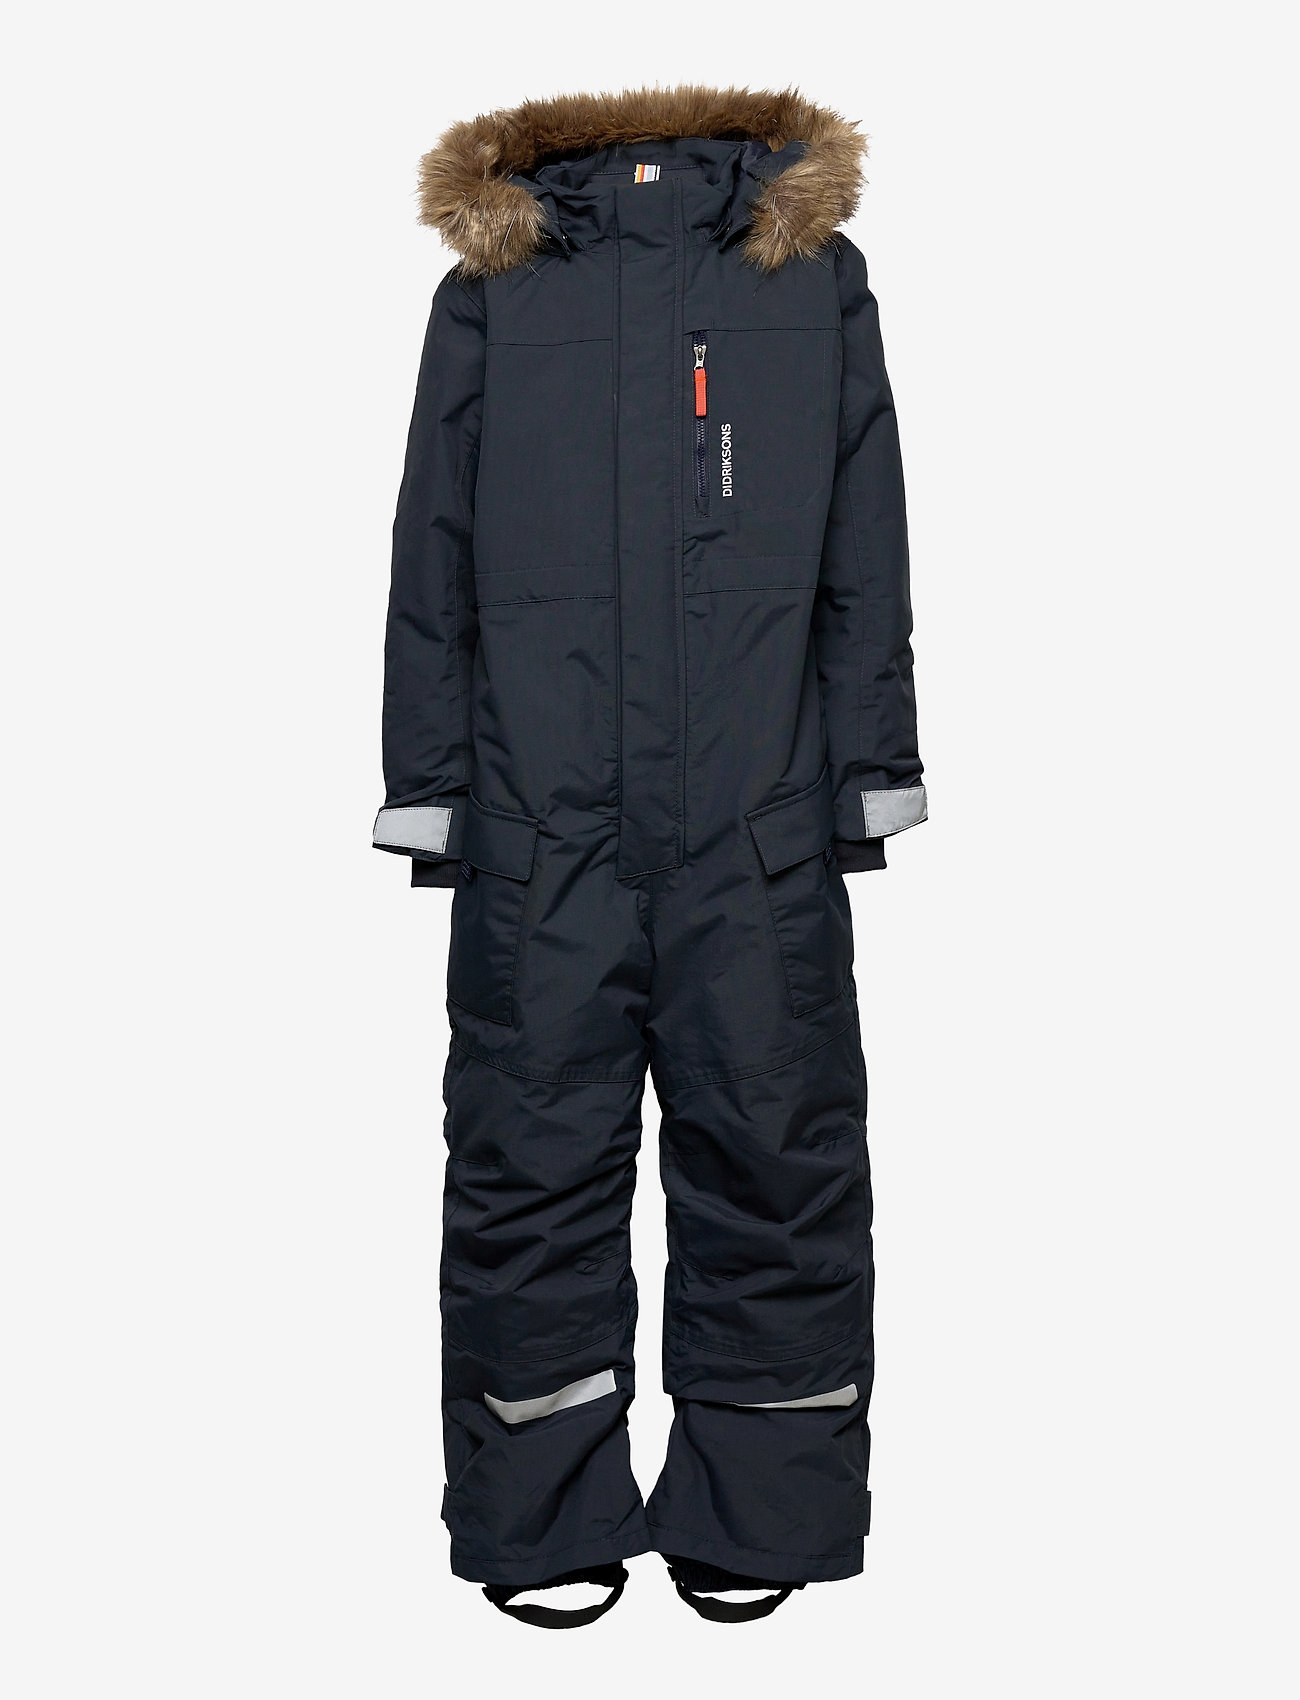 Didriksons - POLARBJÖRNEN COVERALL - shell coveralls - navy - 1